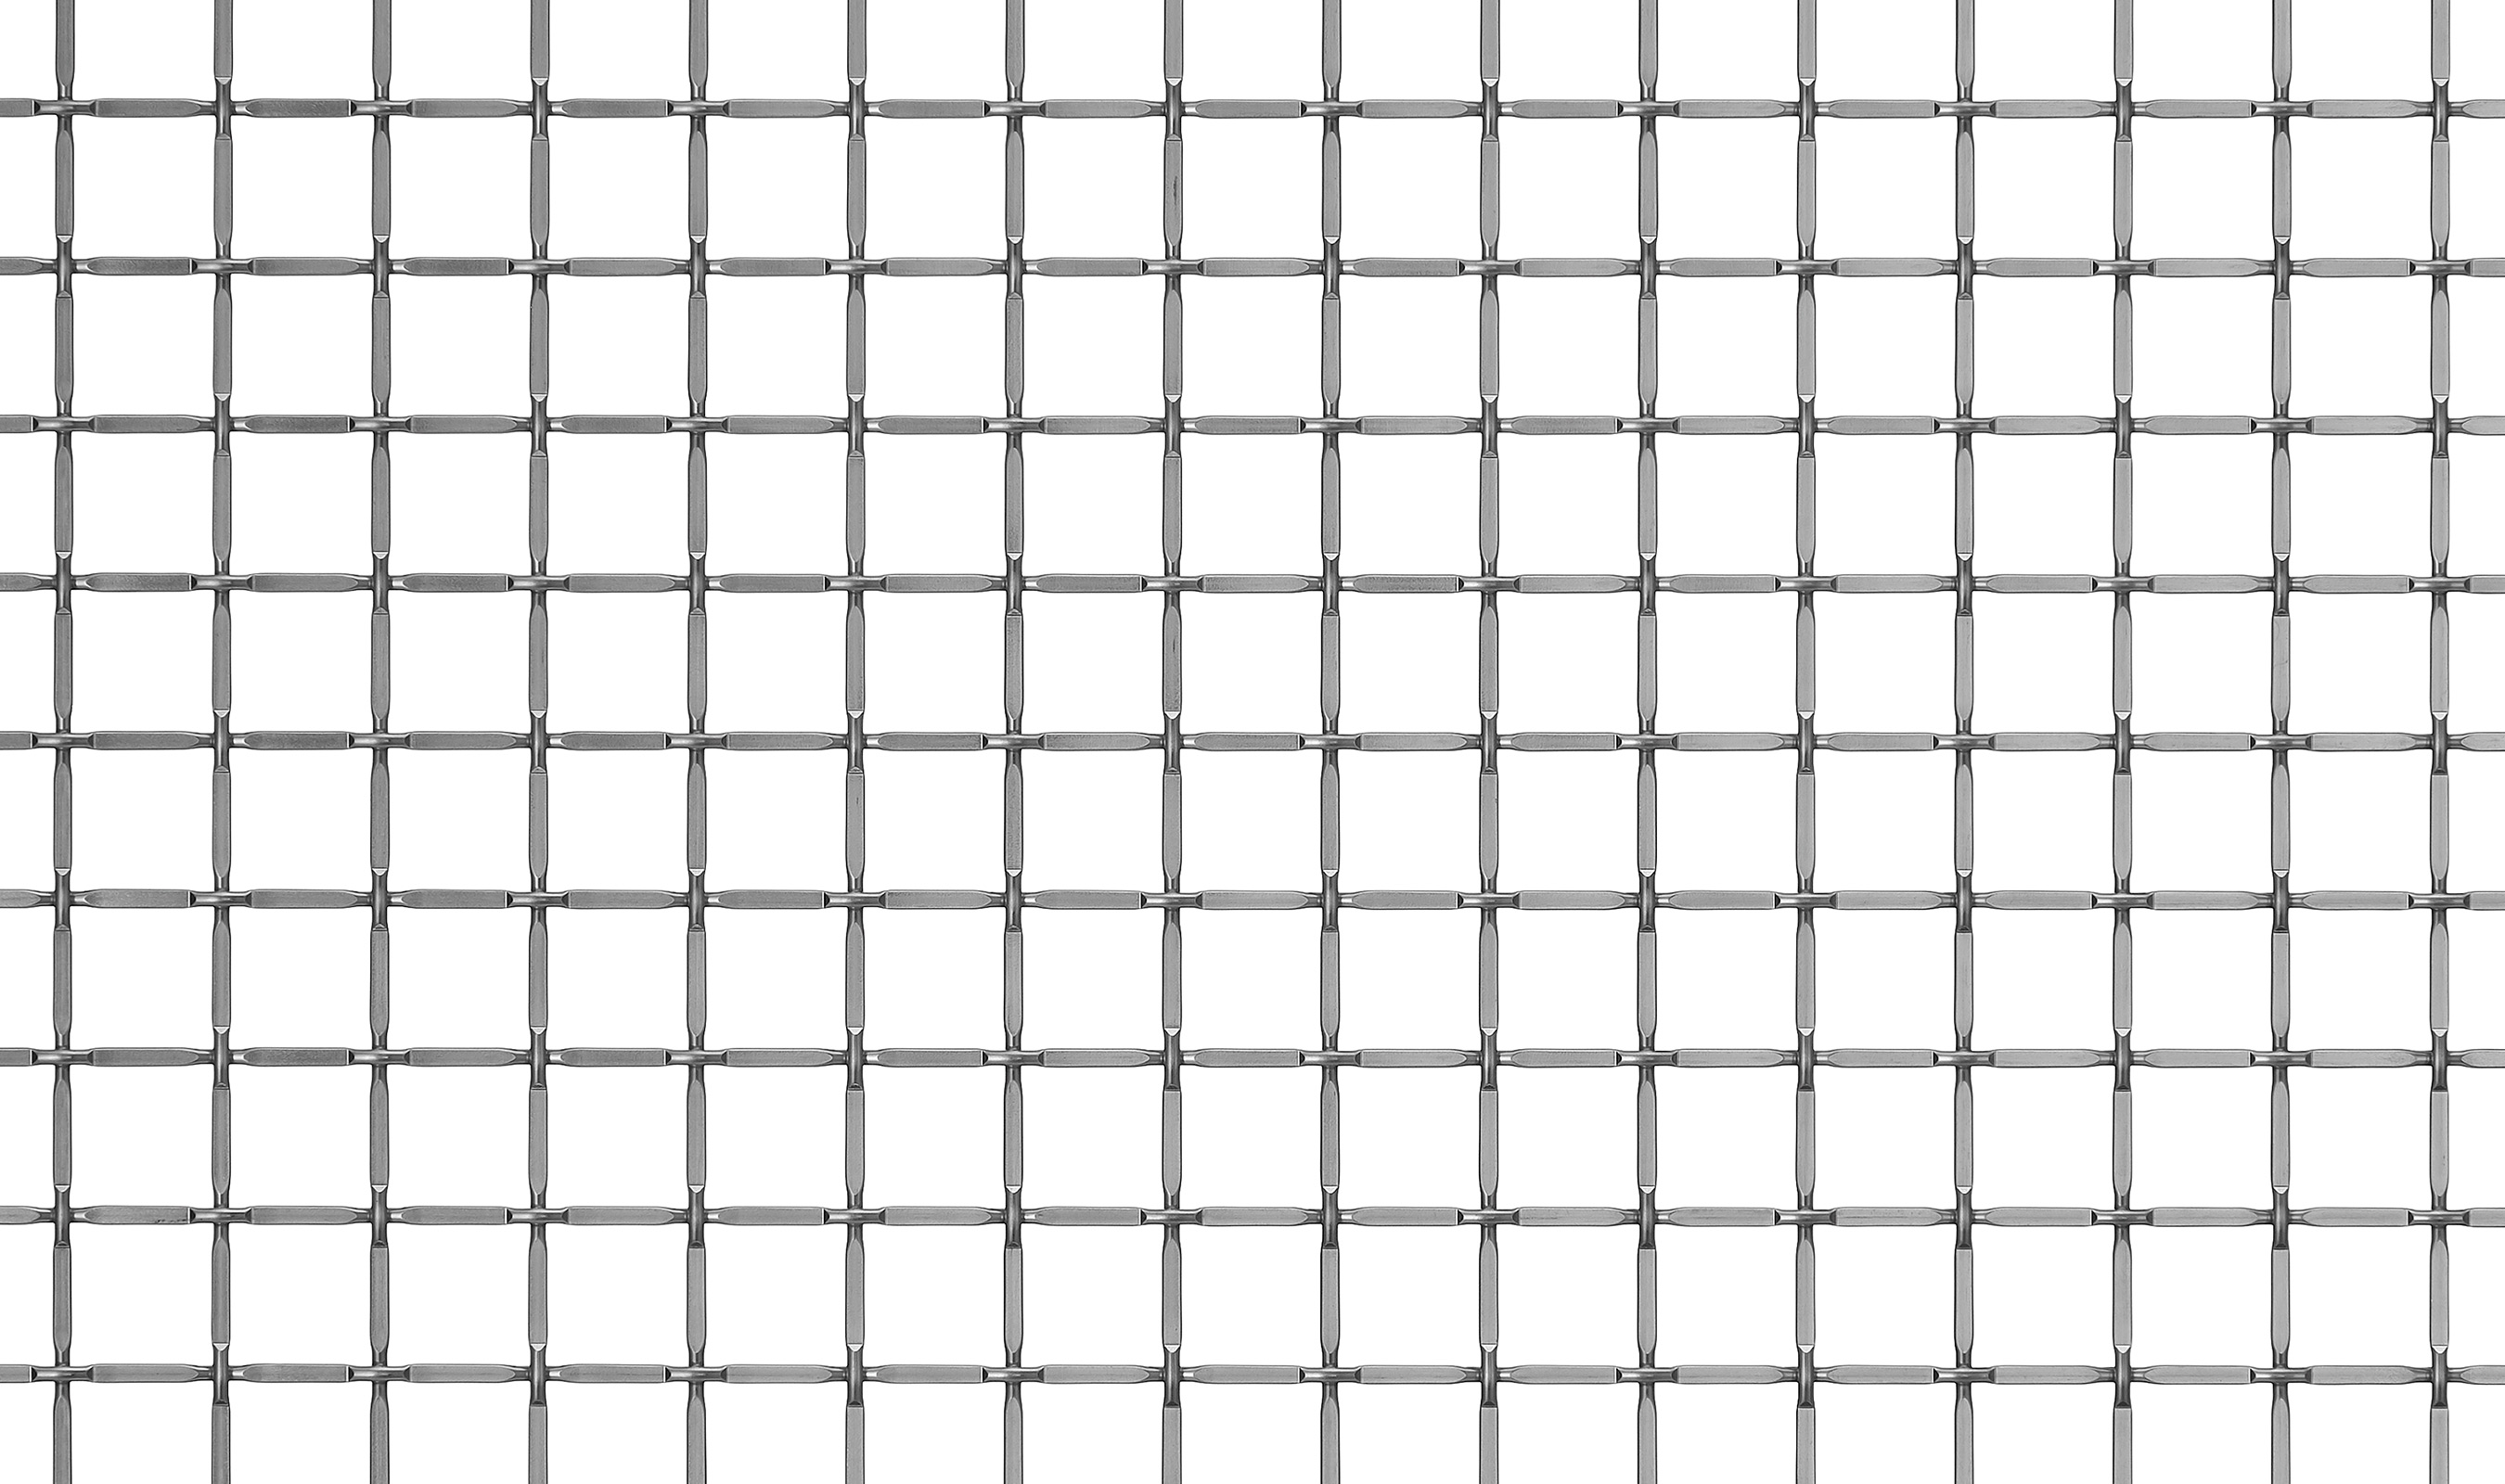 S-47 woven wire mesh in stainless steel.